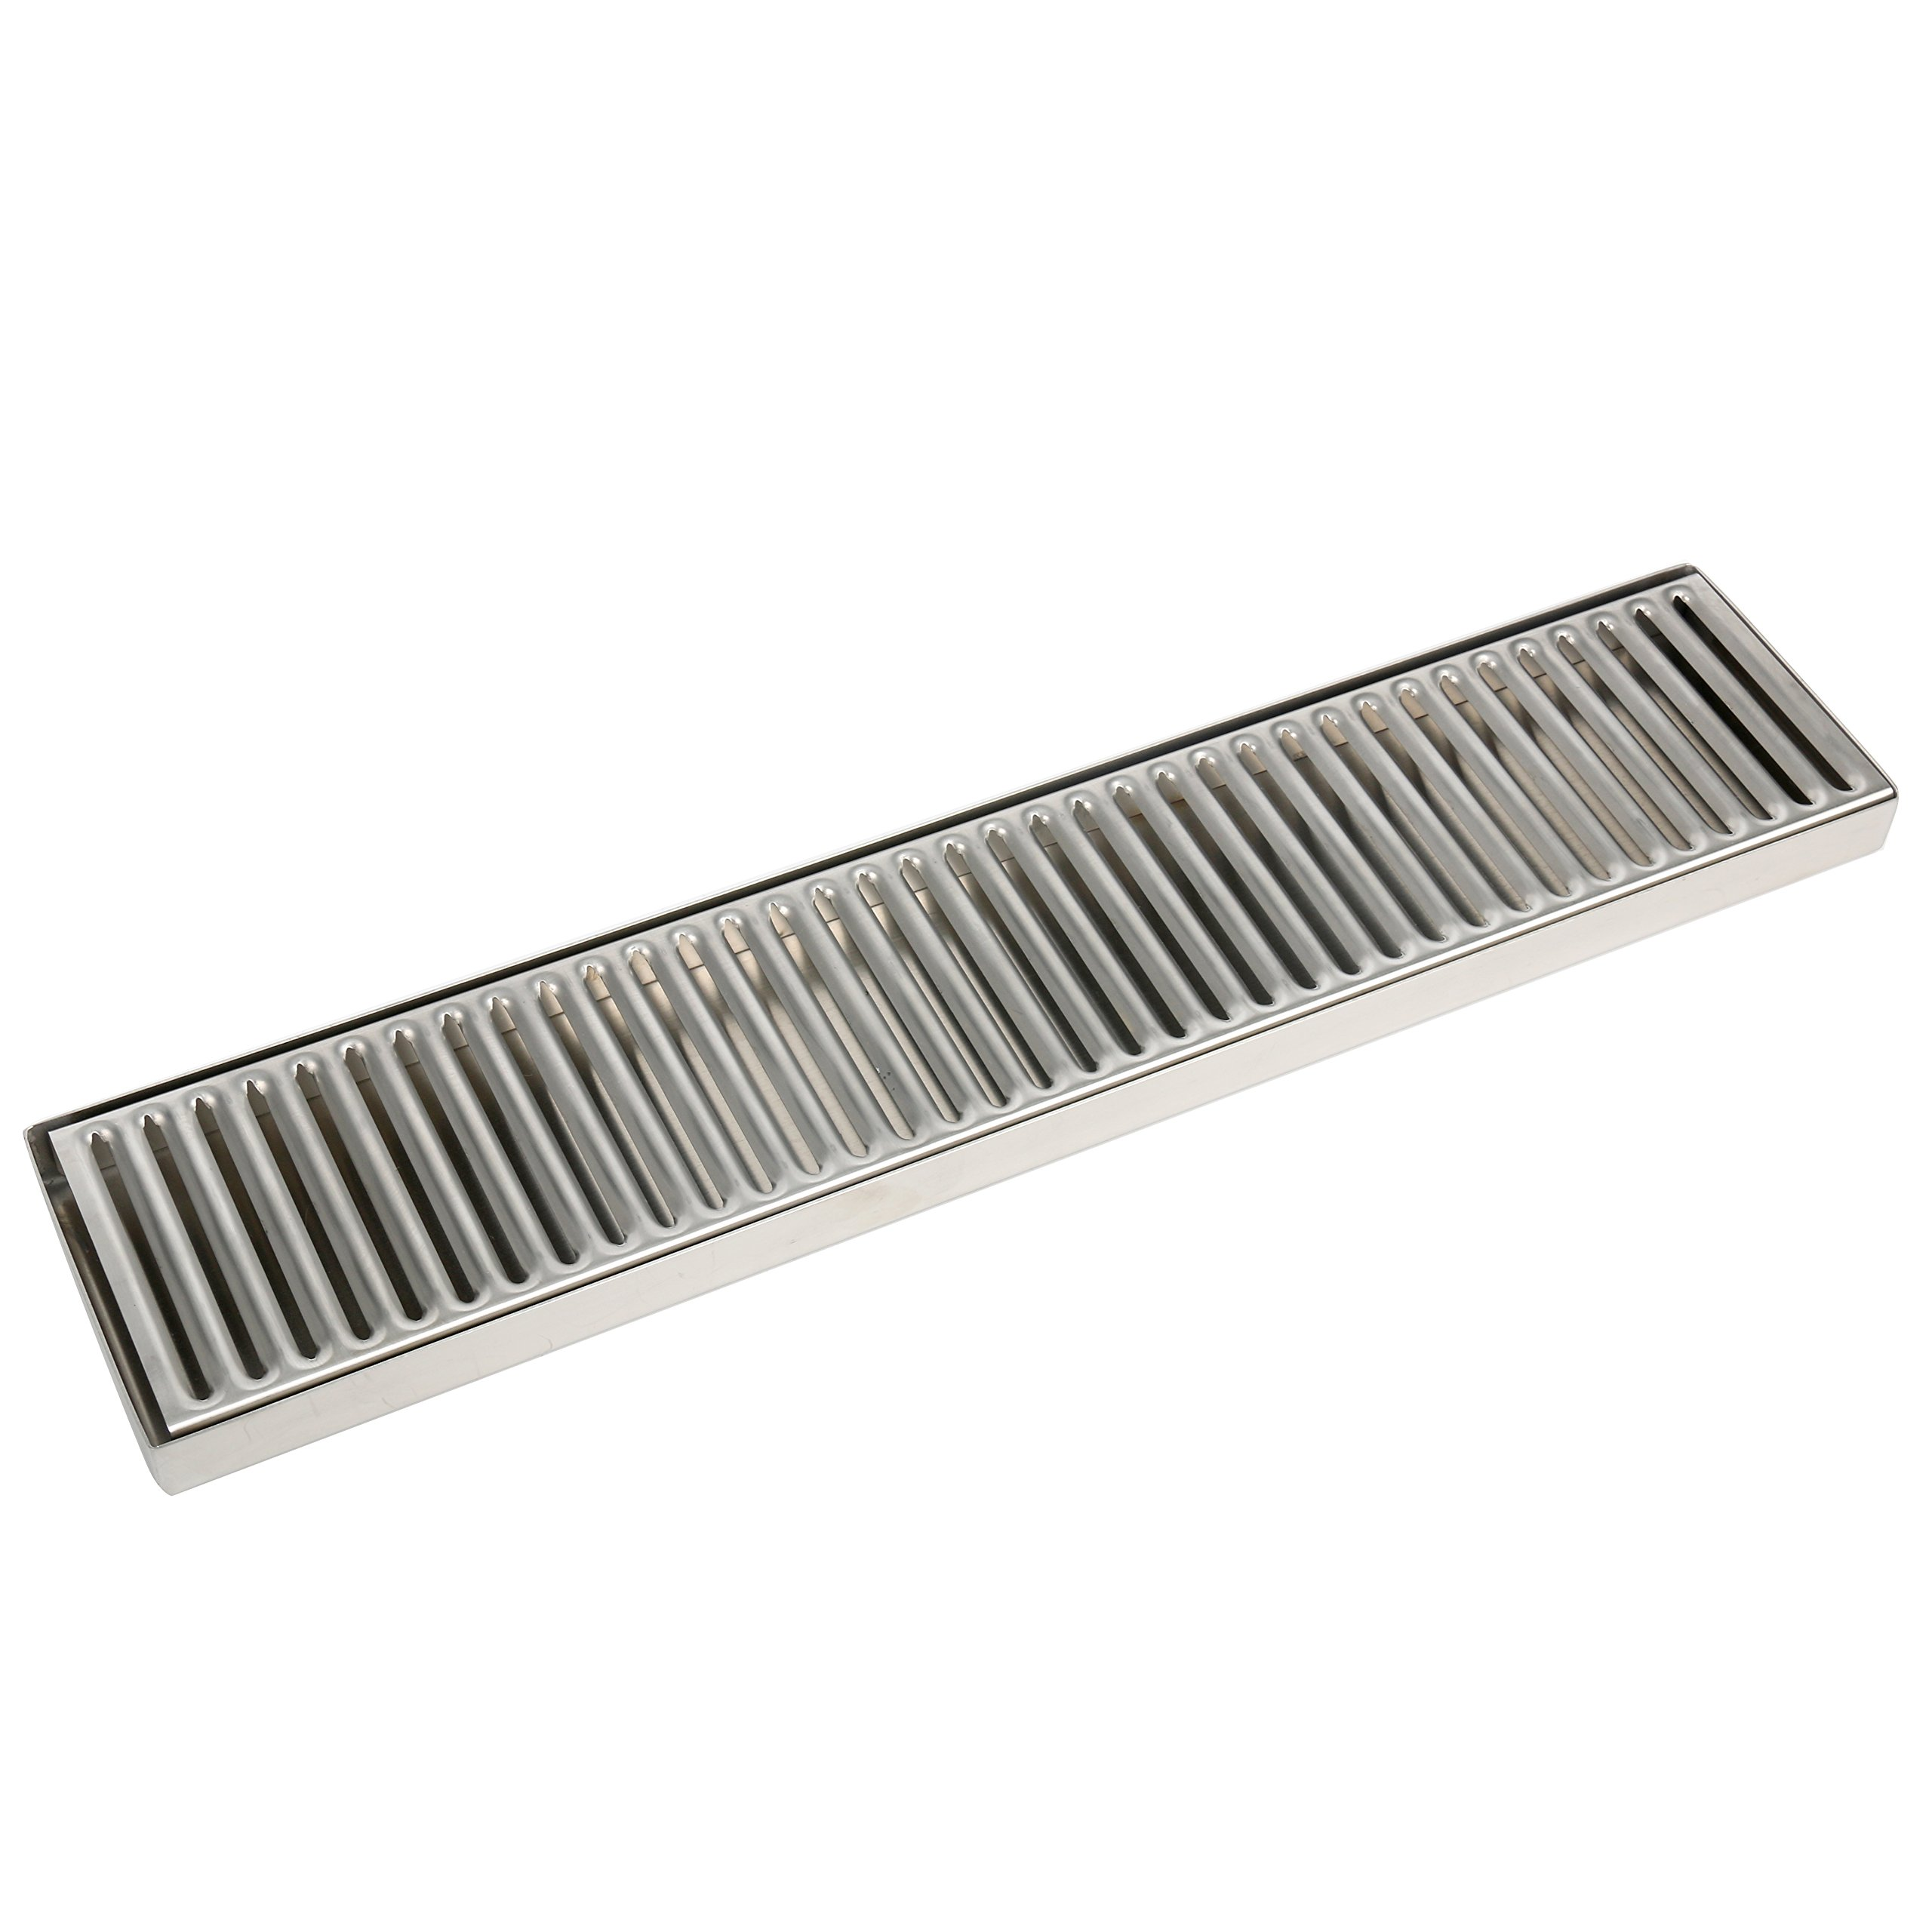 YaeBrew 19'' Length 4'' Width Rectangular Stainless Steel Beer Surface Mount Drip Tray, No Drain, Silver by YaeBrew